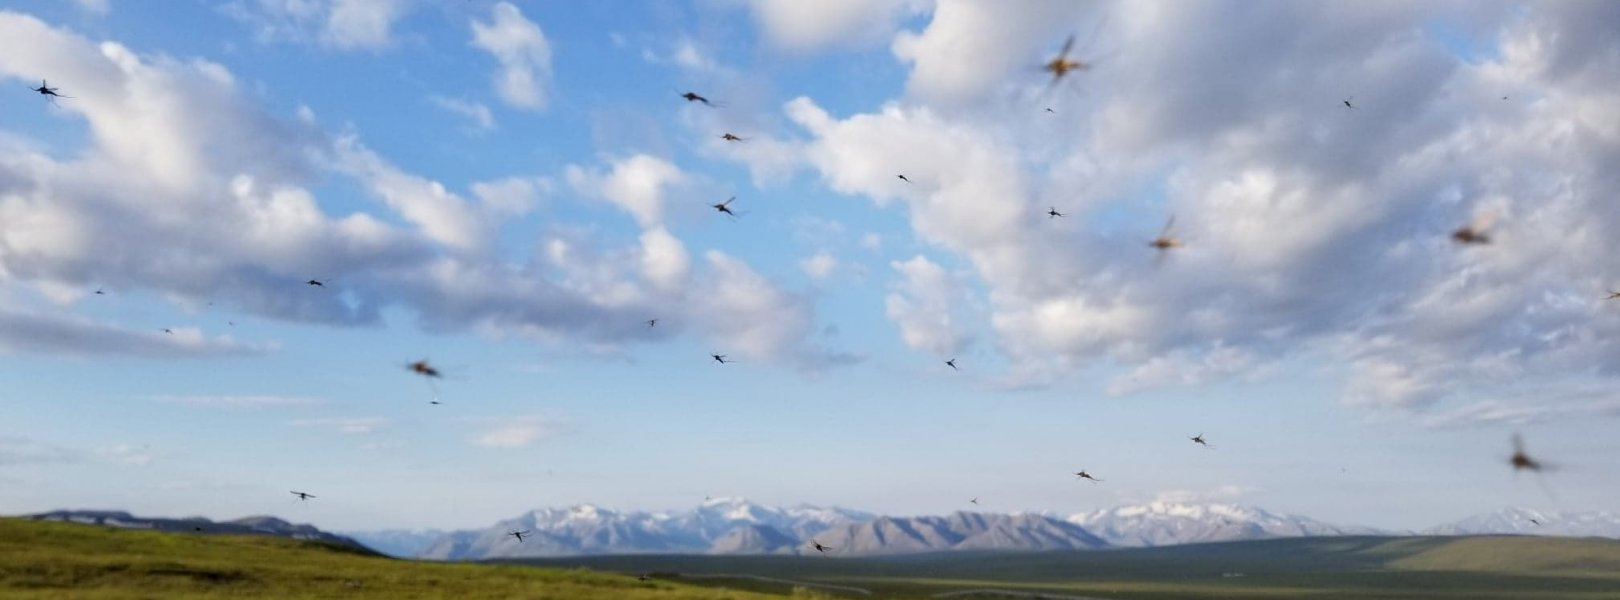 Mosquitos flying in a field with mountains in the background